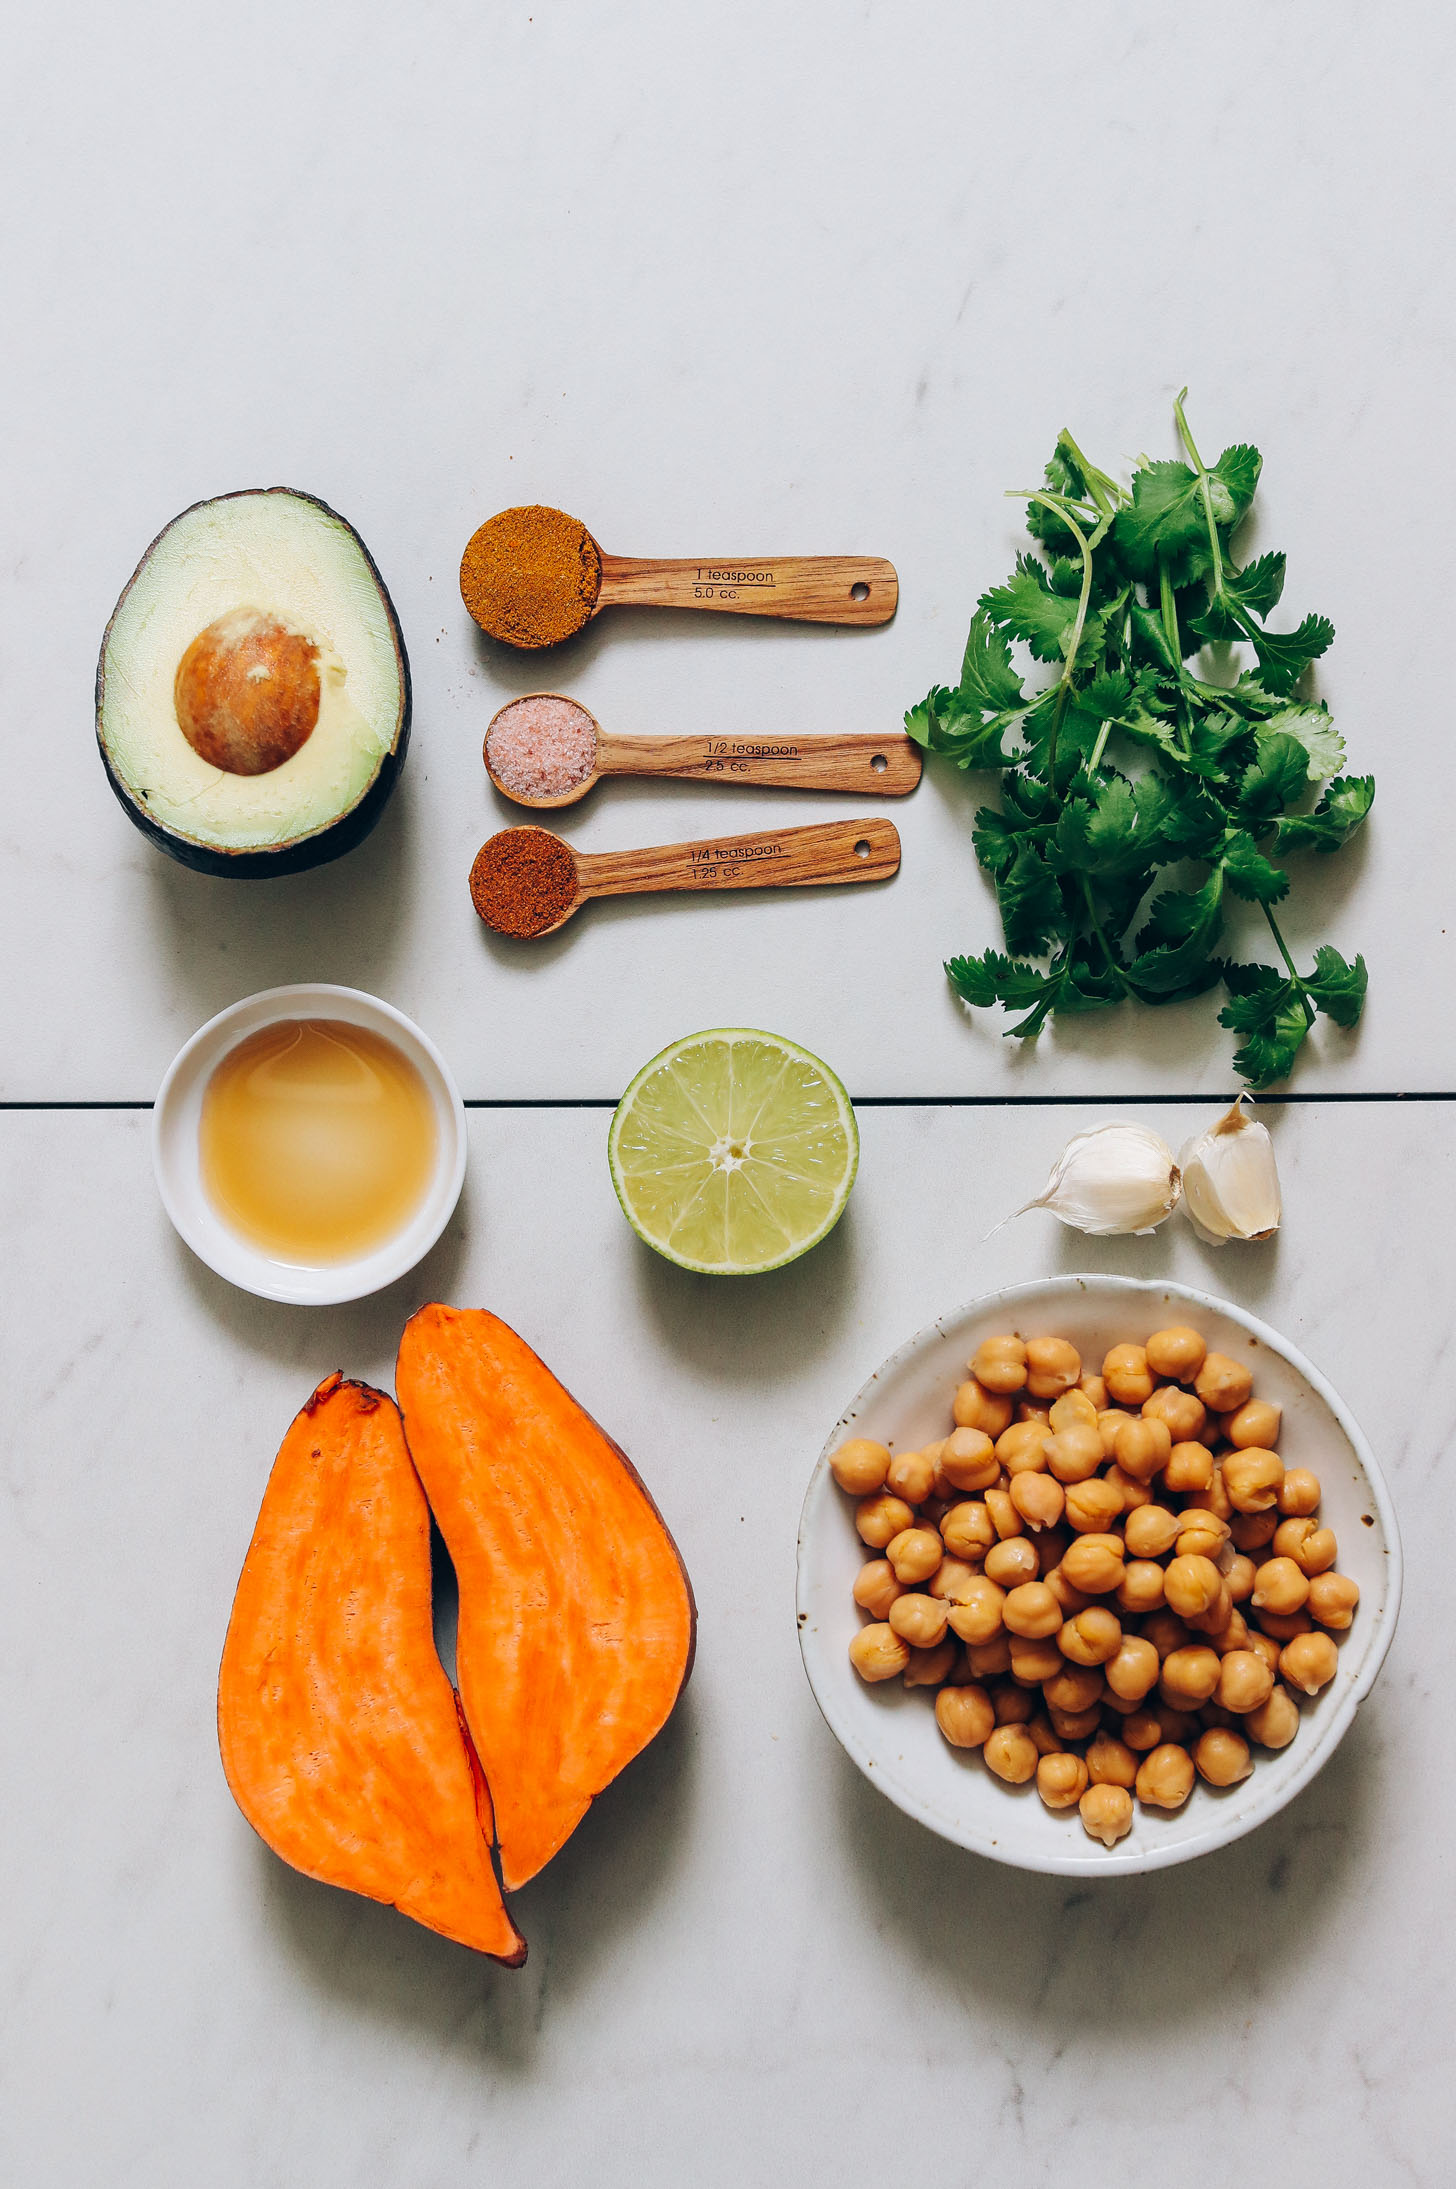 Avocado, dried spices, maple syrup, cilantro, garlic, chickpeas, and sweet potatoes